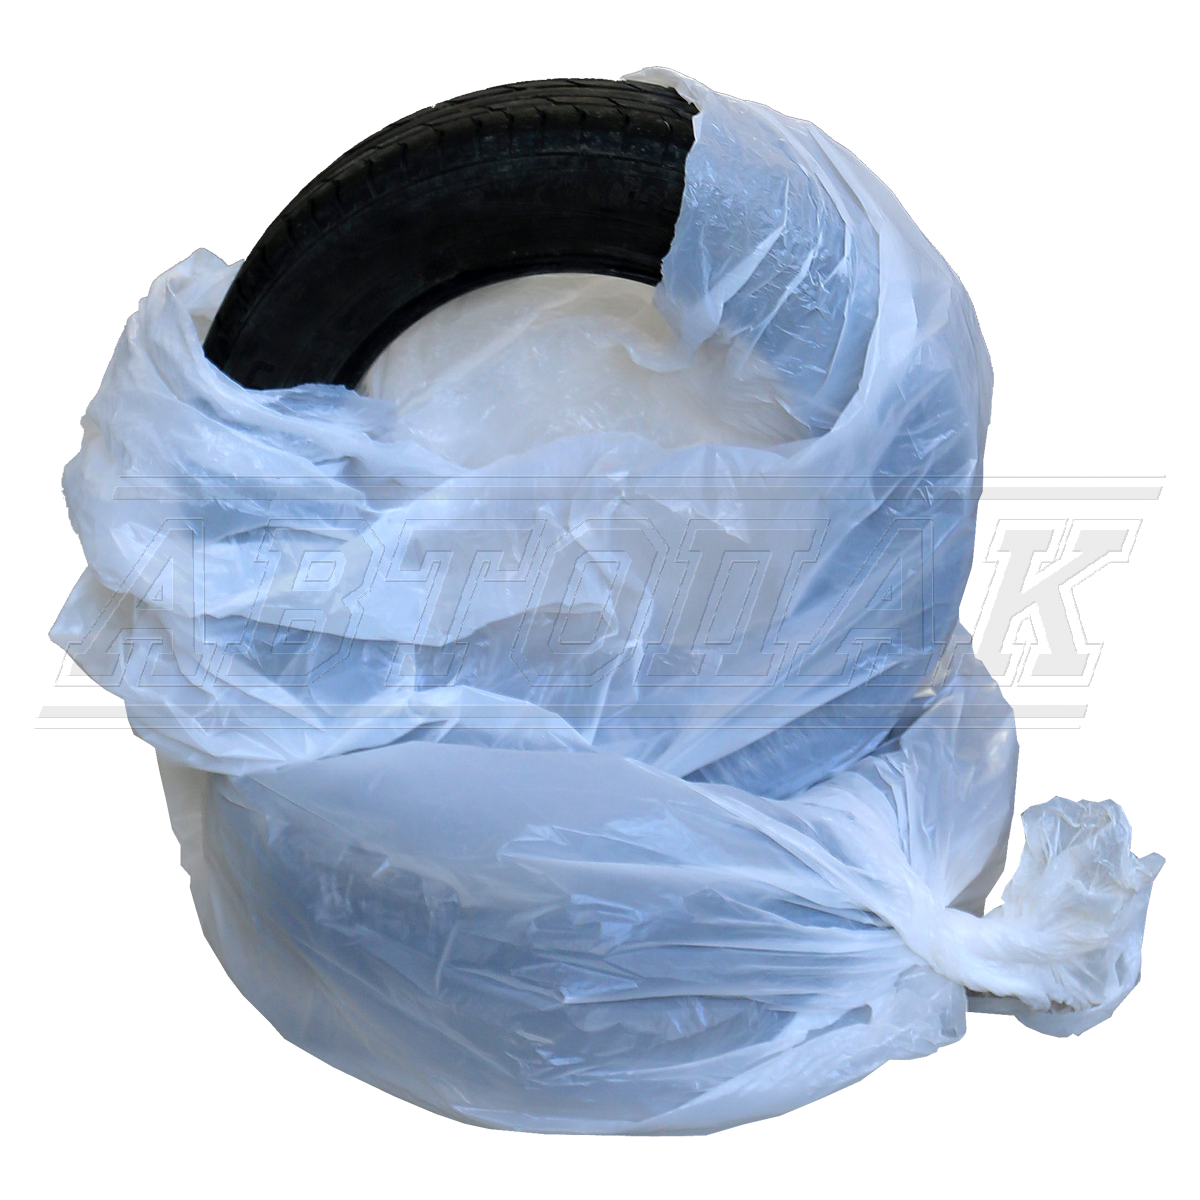 Polyethylene bags for wheels